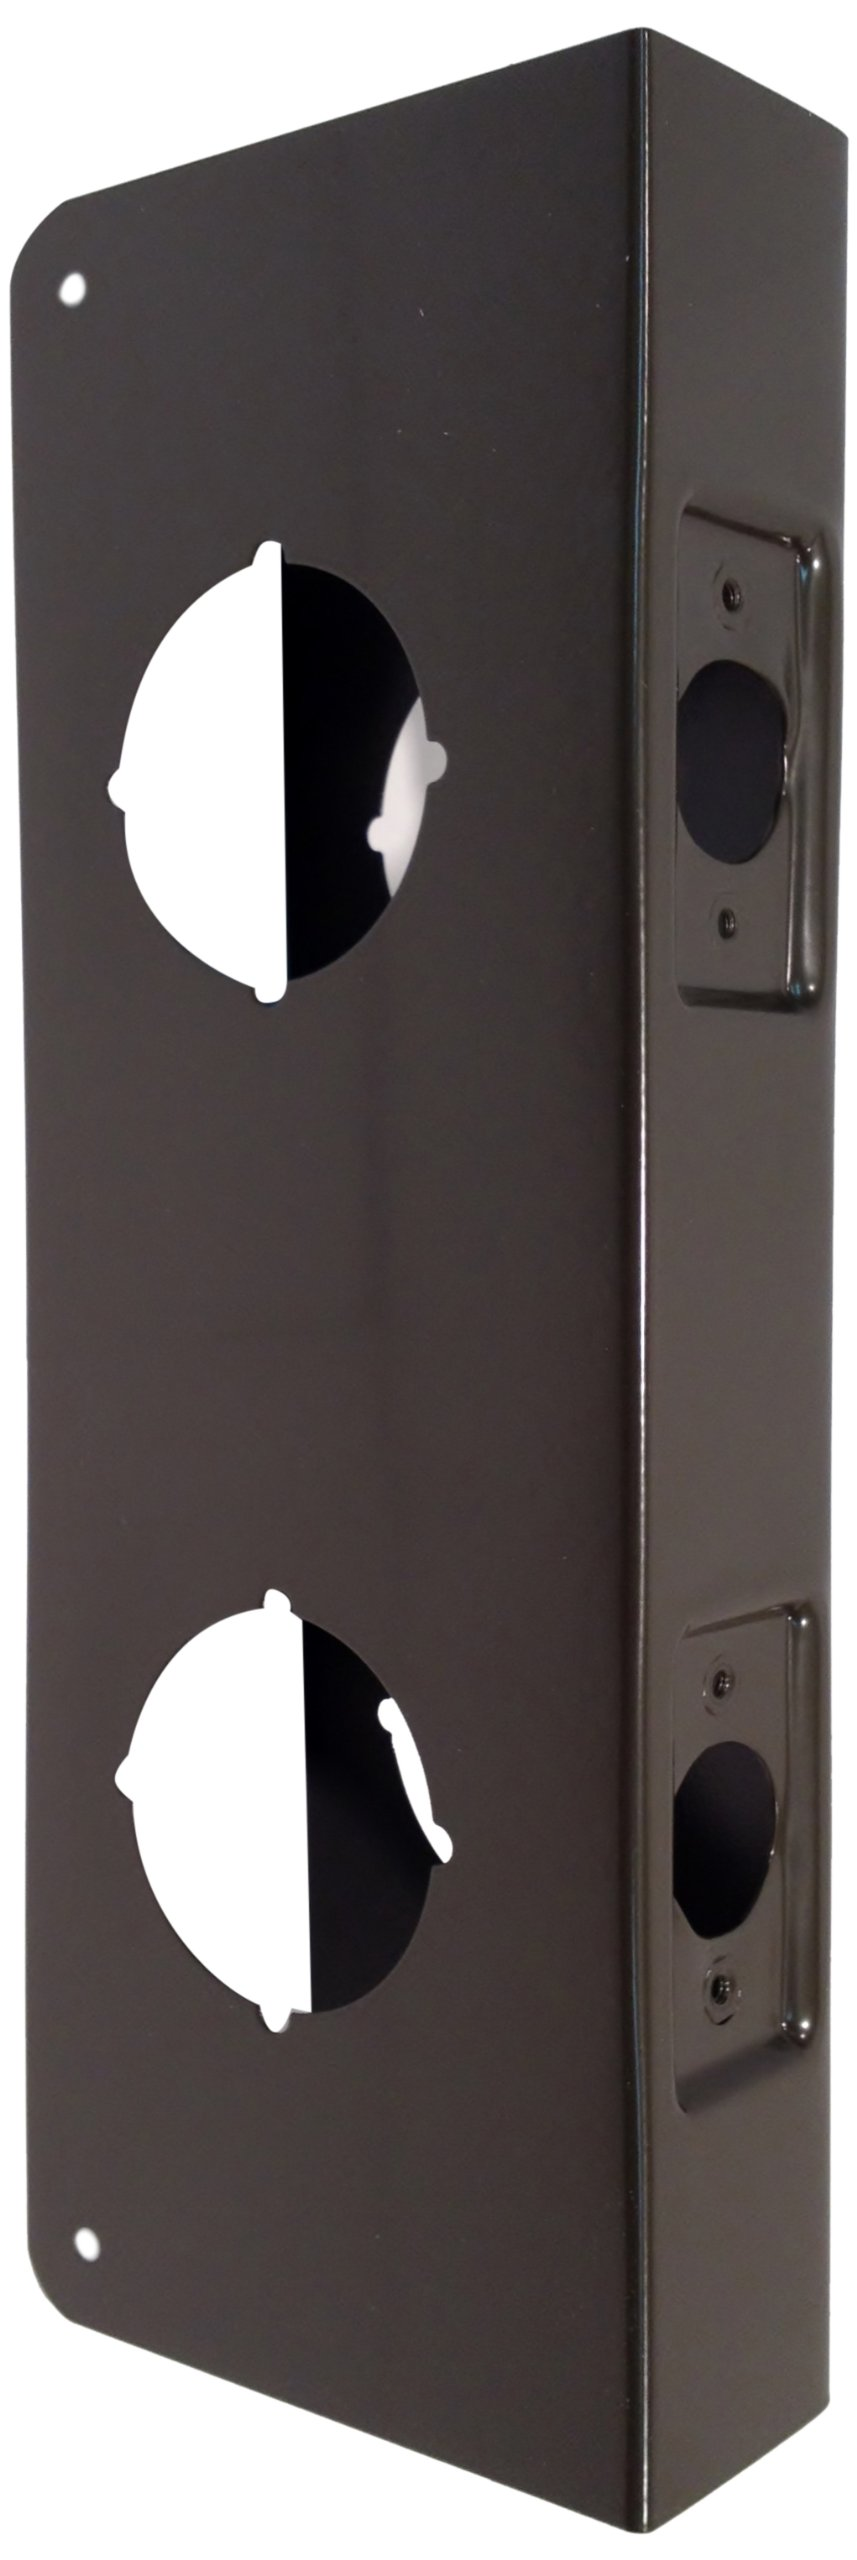 Don-Jo 258-CW 22 Gauge Stainless Steel Classic Wrap-Around Plate, Oil Rubbed Bronze Finish, 4-1/4'' Width x 12'' Height, 2-3/4'' Backset, 1-3/4'' Door Size, For Double Lock Combination Locksets (Pack of 10)